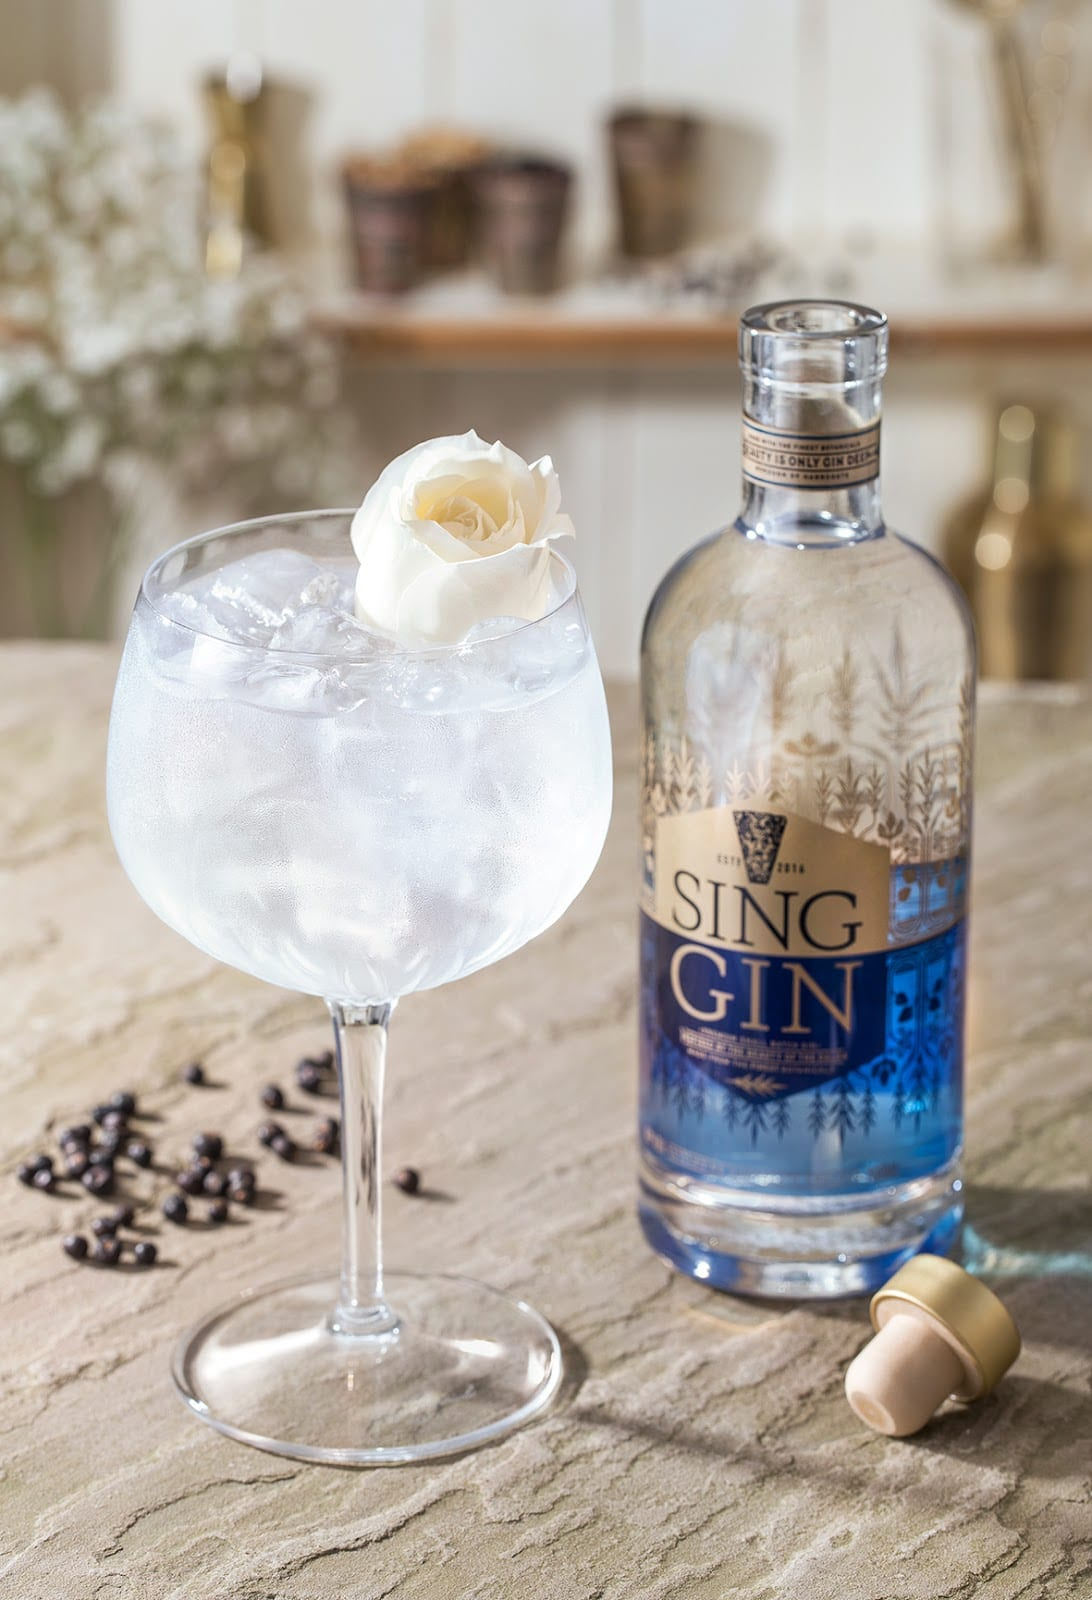 Sing Gin 08 - Ach, tie obaly – Sing Gin